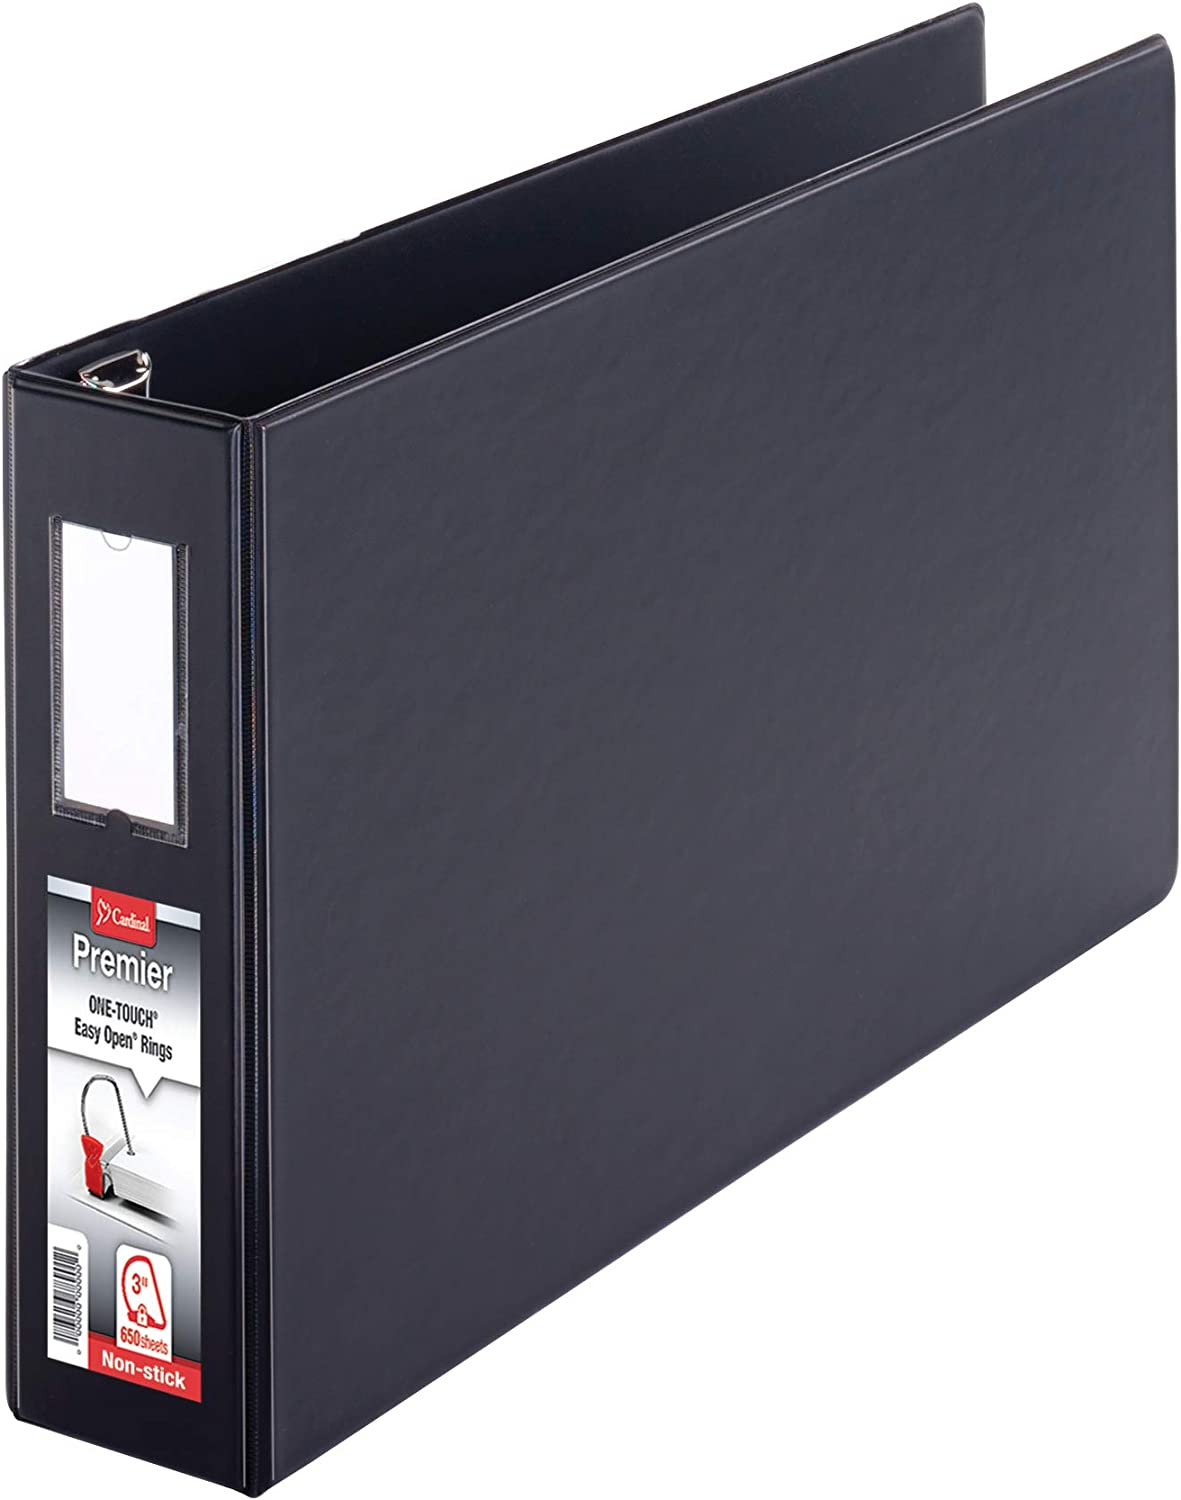 12142V4 Cardinal Premier 11 x 17 3-Ring Binder 3 Locking Slant-D Rings Black with Spine Label Heavy-Duty Covers 650-Sheet Capacity